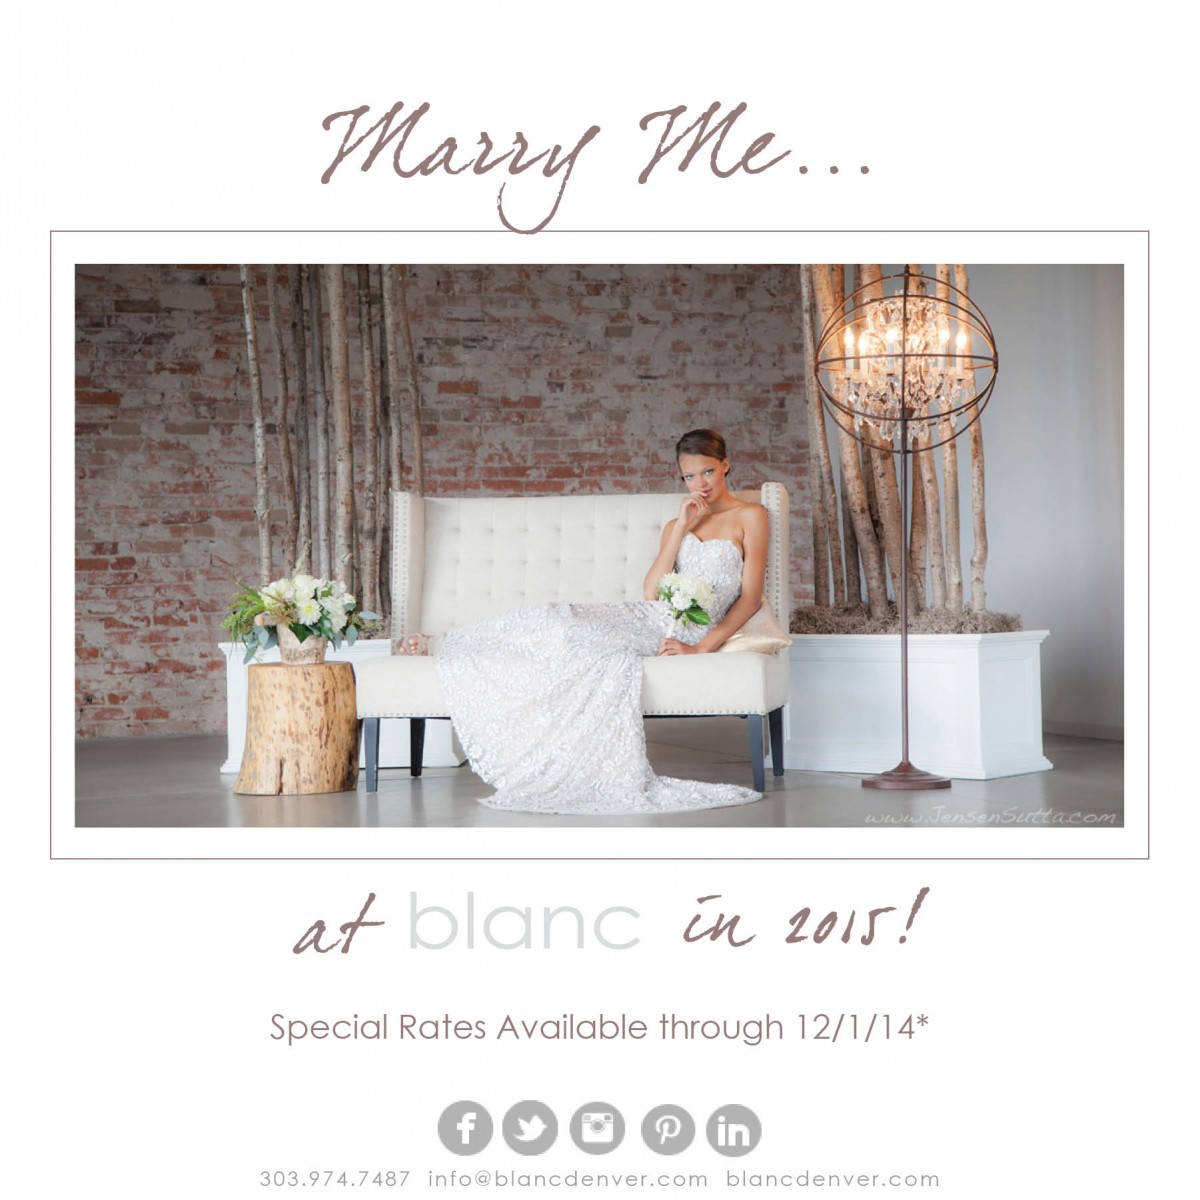 Marry Me…at blanc in 2015! Special rates available through 12/01/14!